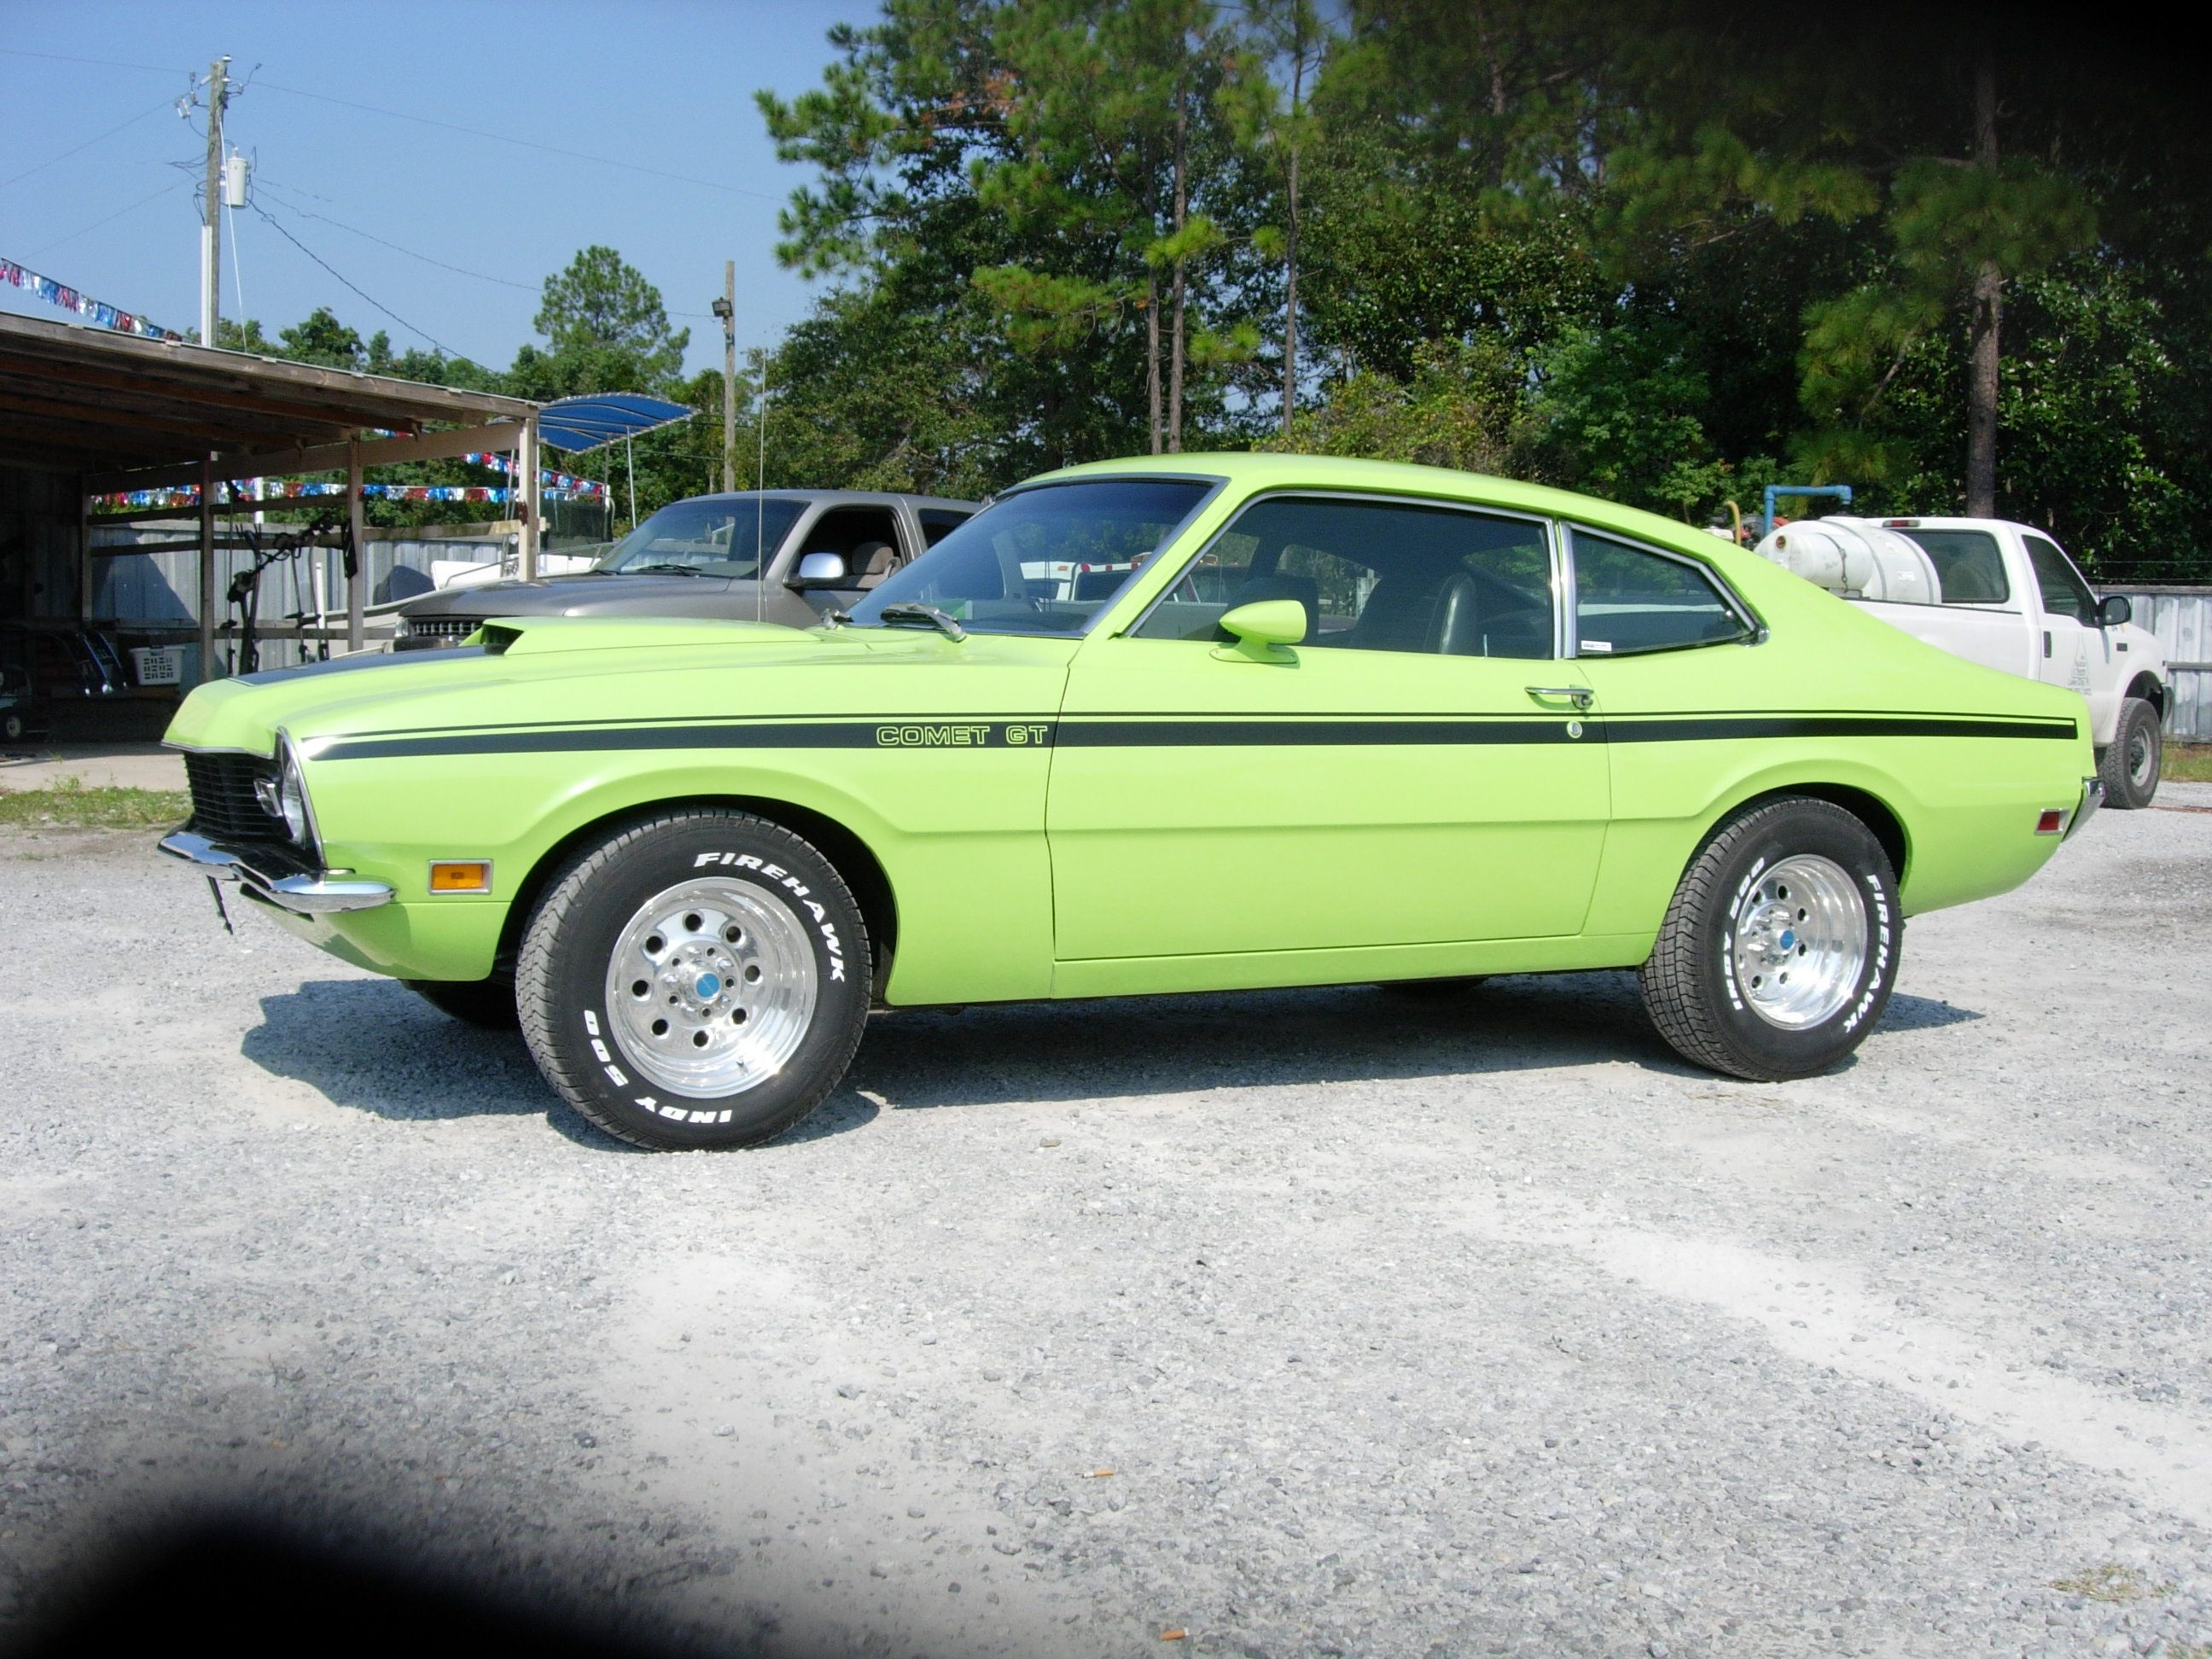 cars of the 70's pics | help with 70's comet please. - ford muscle